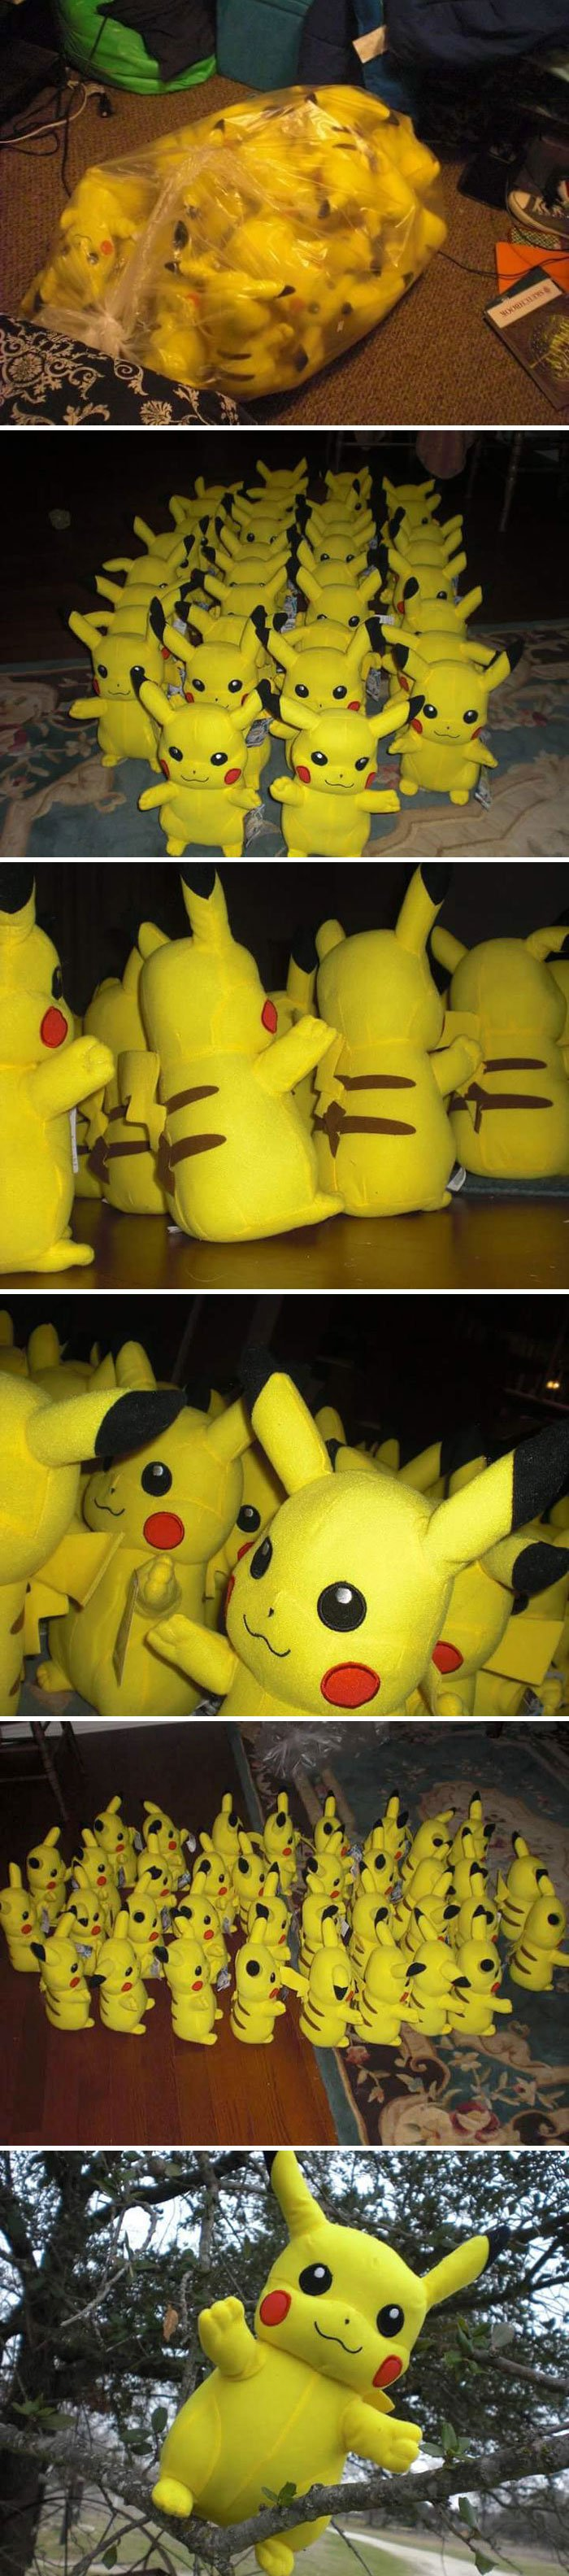 On This Day In 2011, I Found 36 Stuffed Pikachus At A Salvation Army